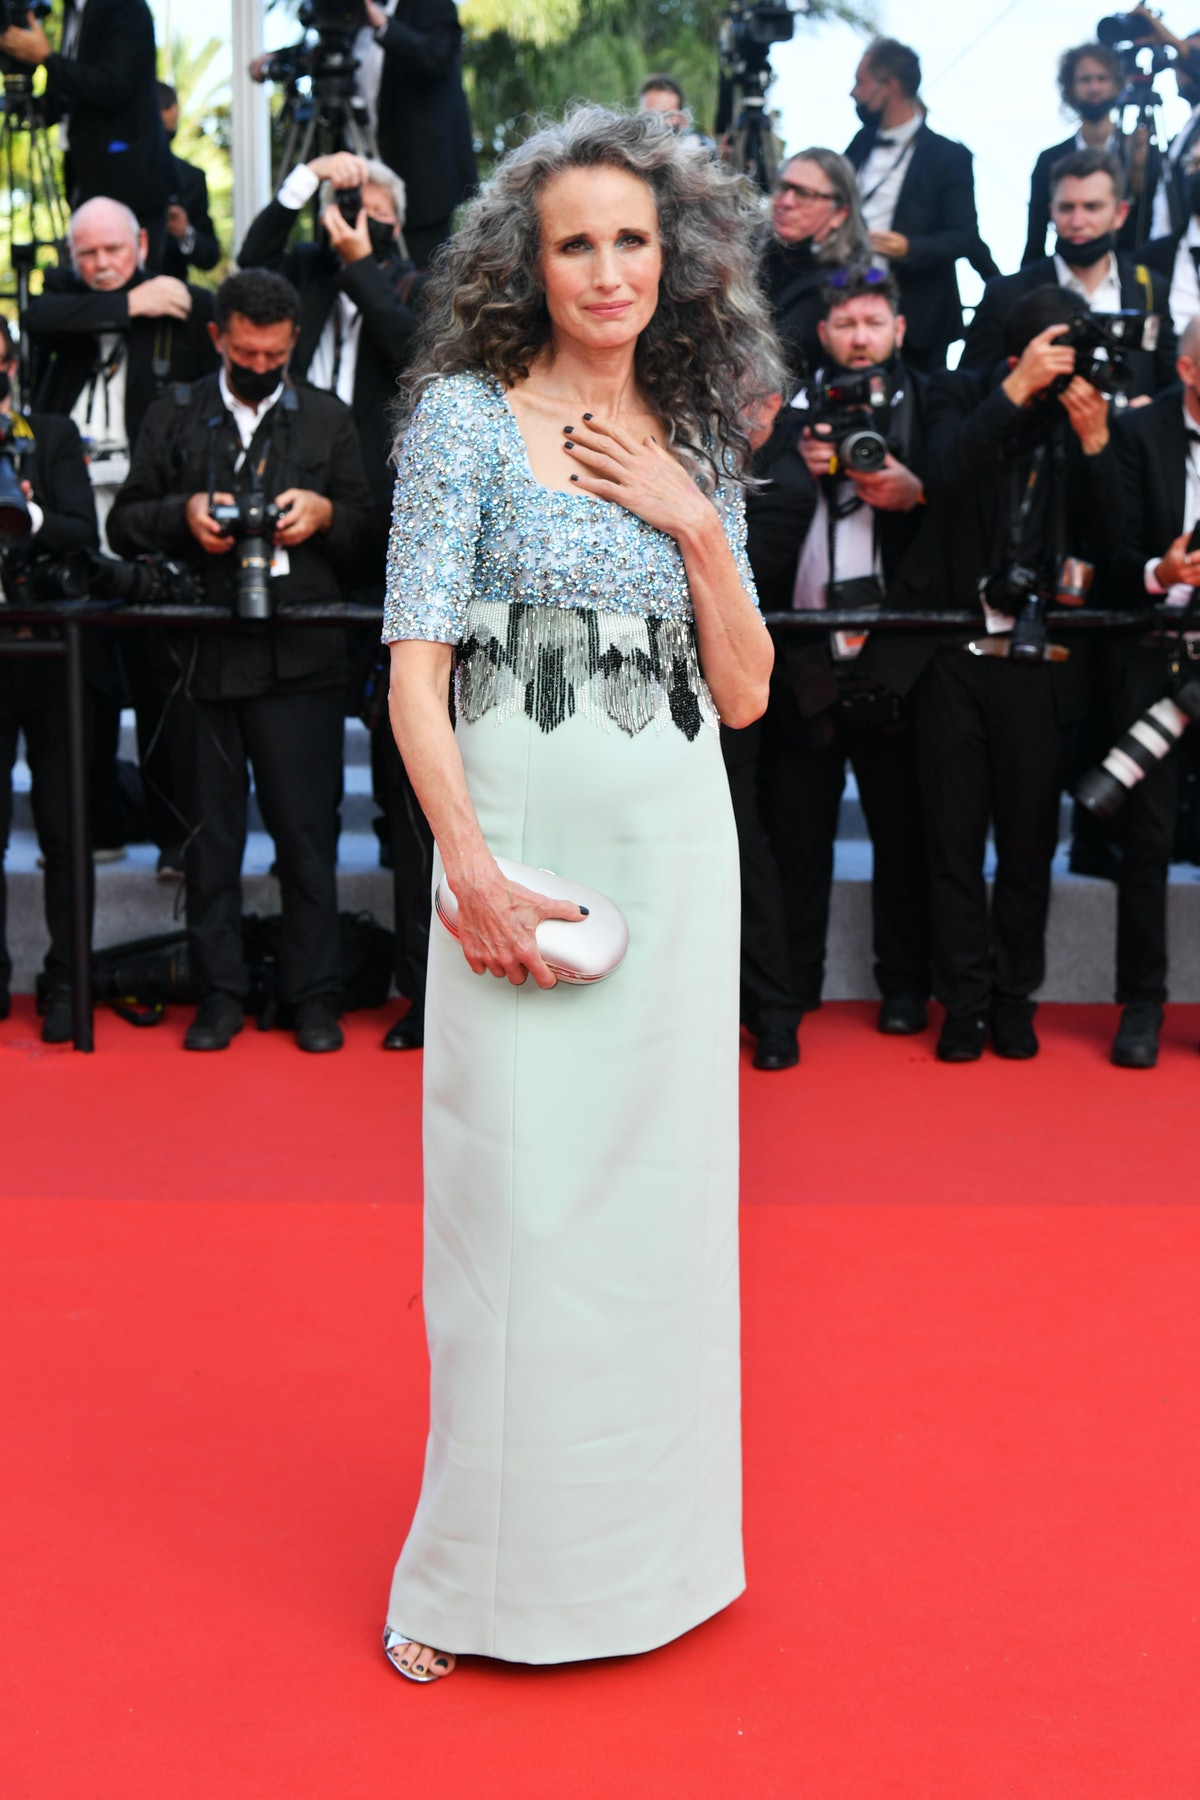 """CANNES, FRANCE - JULY 06: Andie MacDowell attends the """"Annette"""" screening and opening ceremony during the 74th annual Cannes Film Festival on July 06, 2021 in Cannes, France. (Photo by Dominique Charriau/WireImage)"""